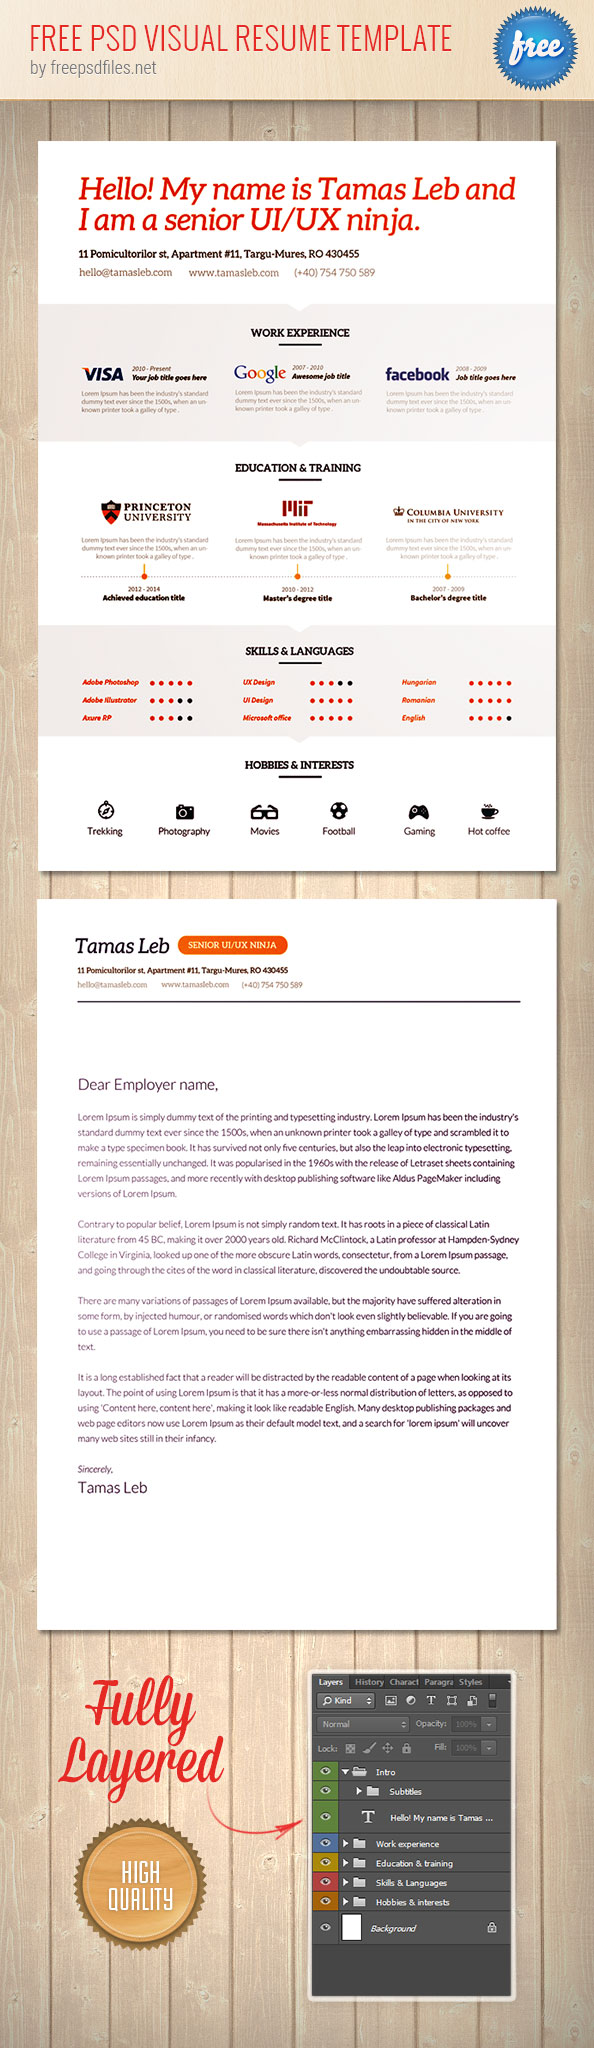 free psd visual resume template free psd files